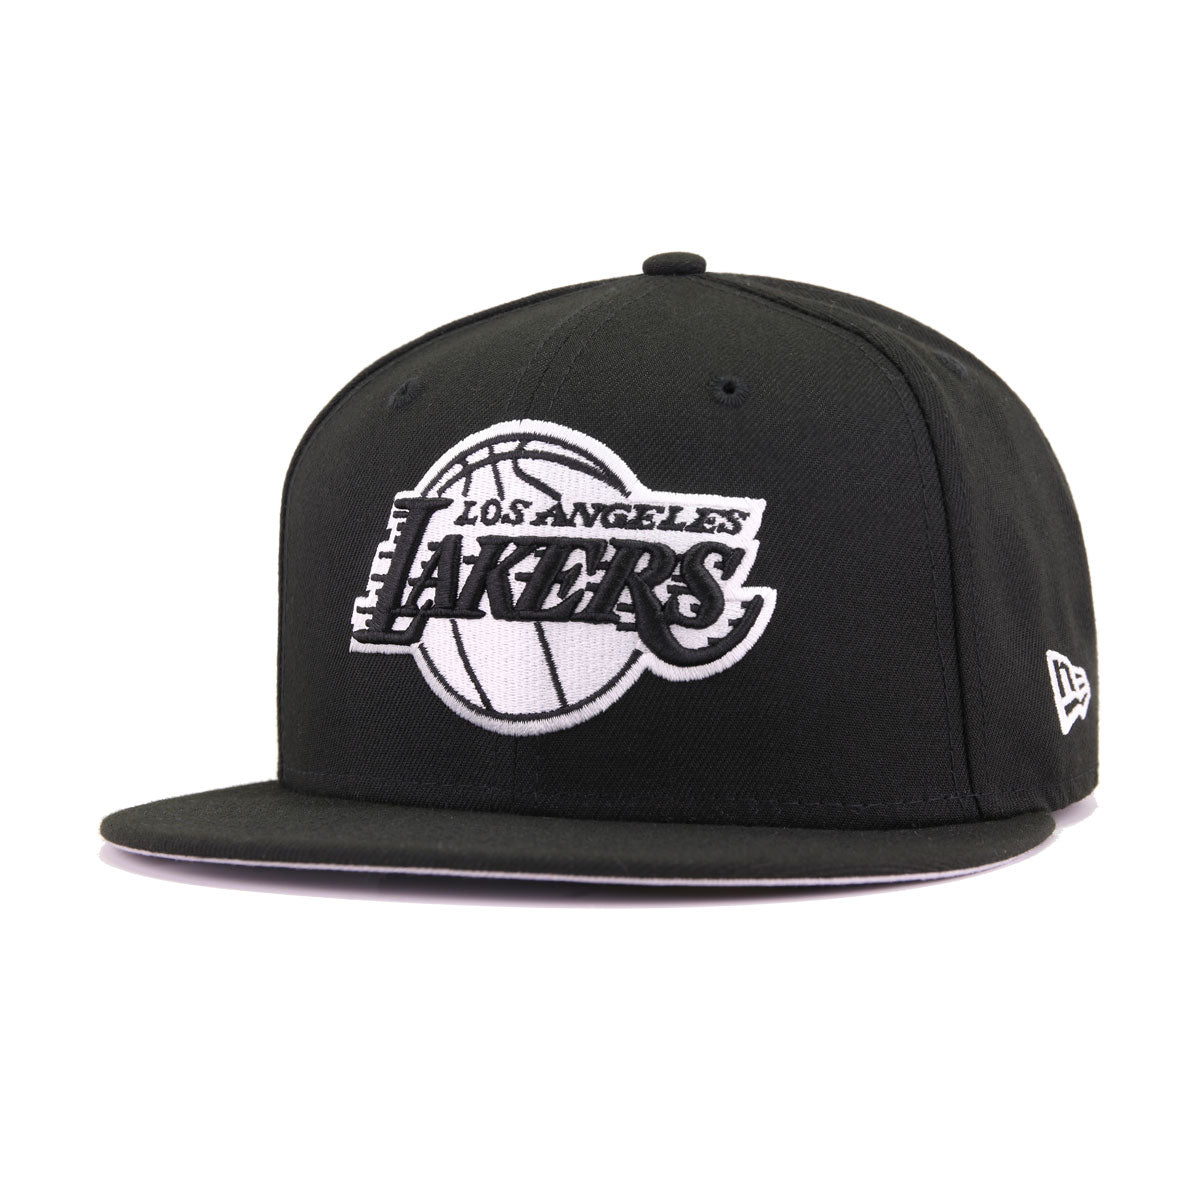 Los Angeles Lakers Black White New Era 59Fifty Fitted 54db0a5280b0